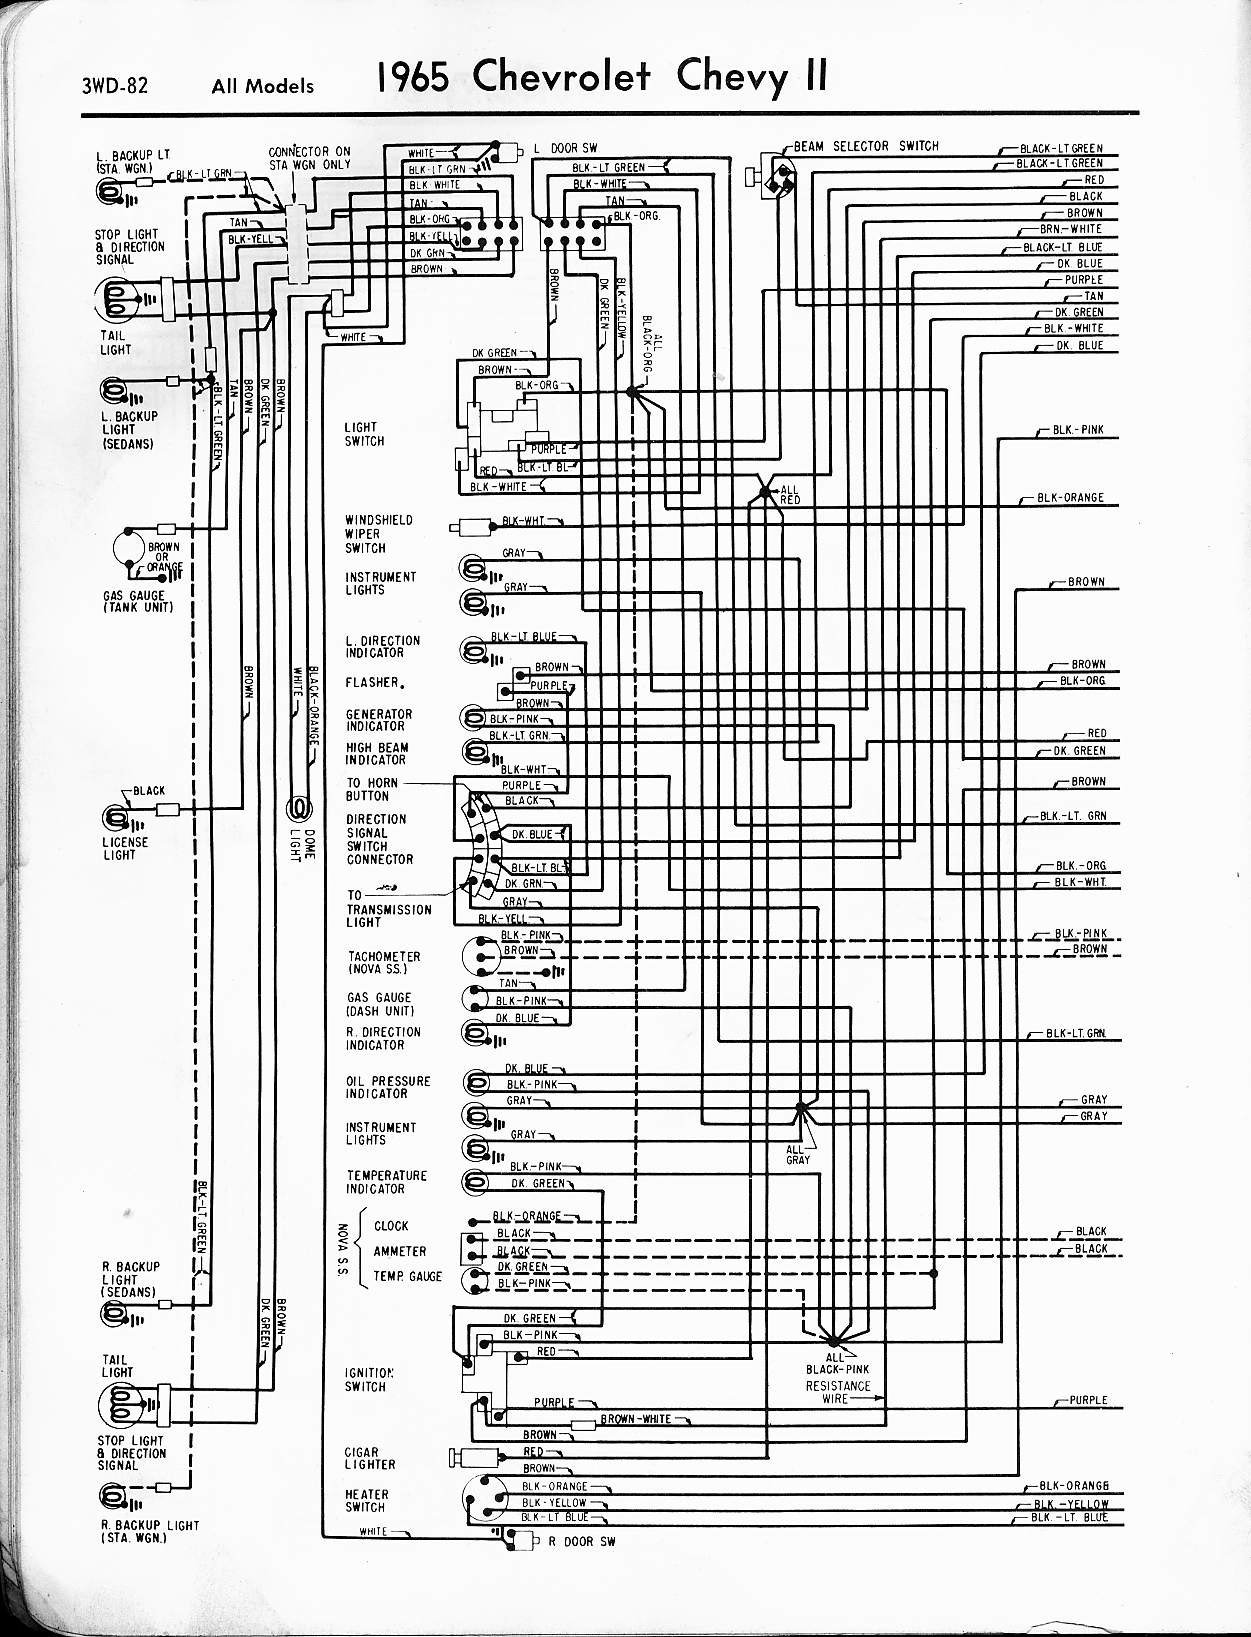 MWireChev65_3WD 082 57 65 chevy wiring diagrams chevy wiring diagrams at n-0.co